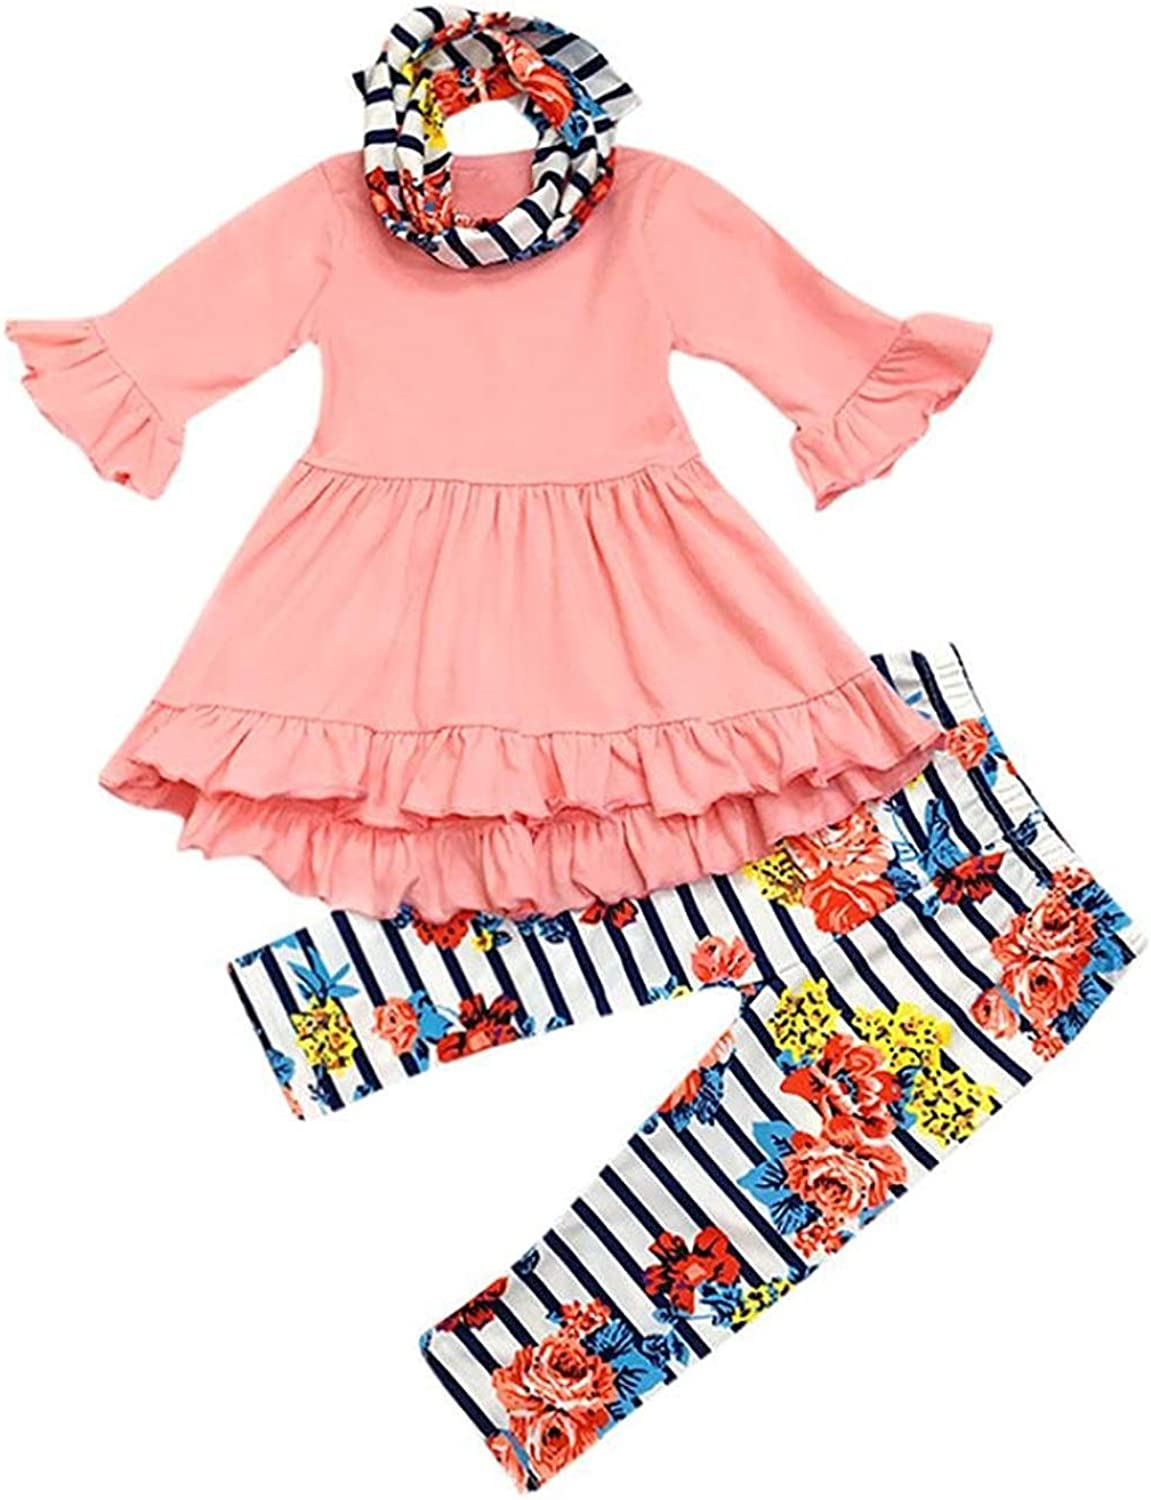 3PC Toddler Baby Girls Cute Floral Dress H Pants Christmas Ranking TOP4 Shirt Low price